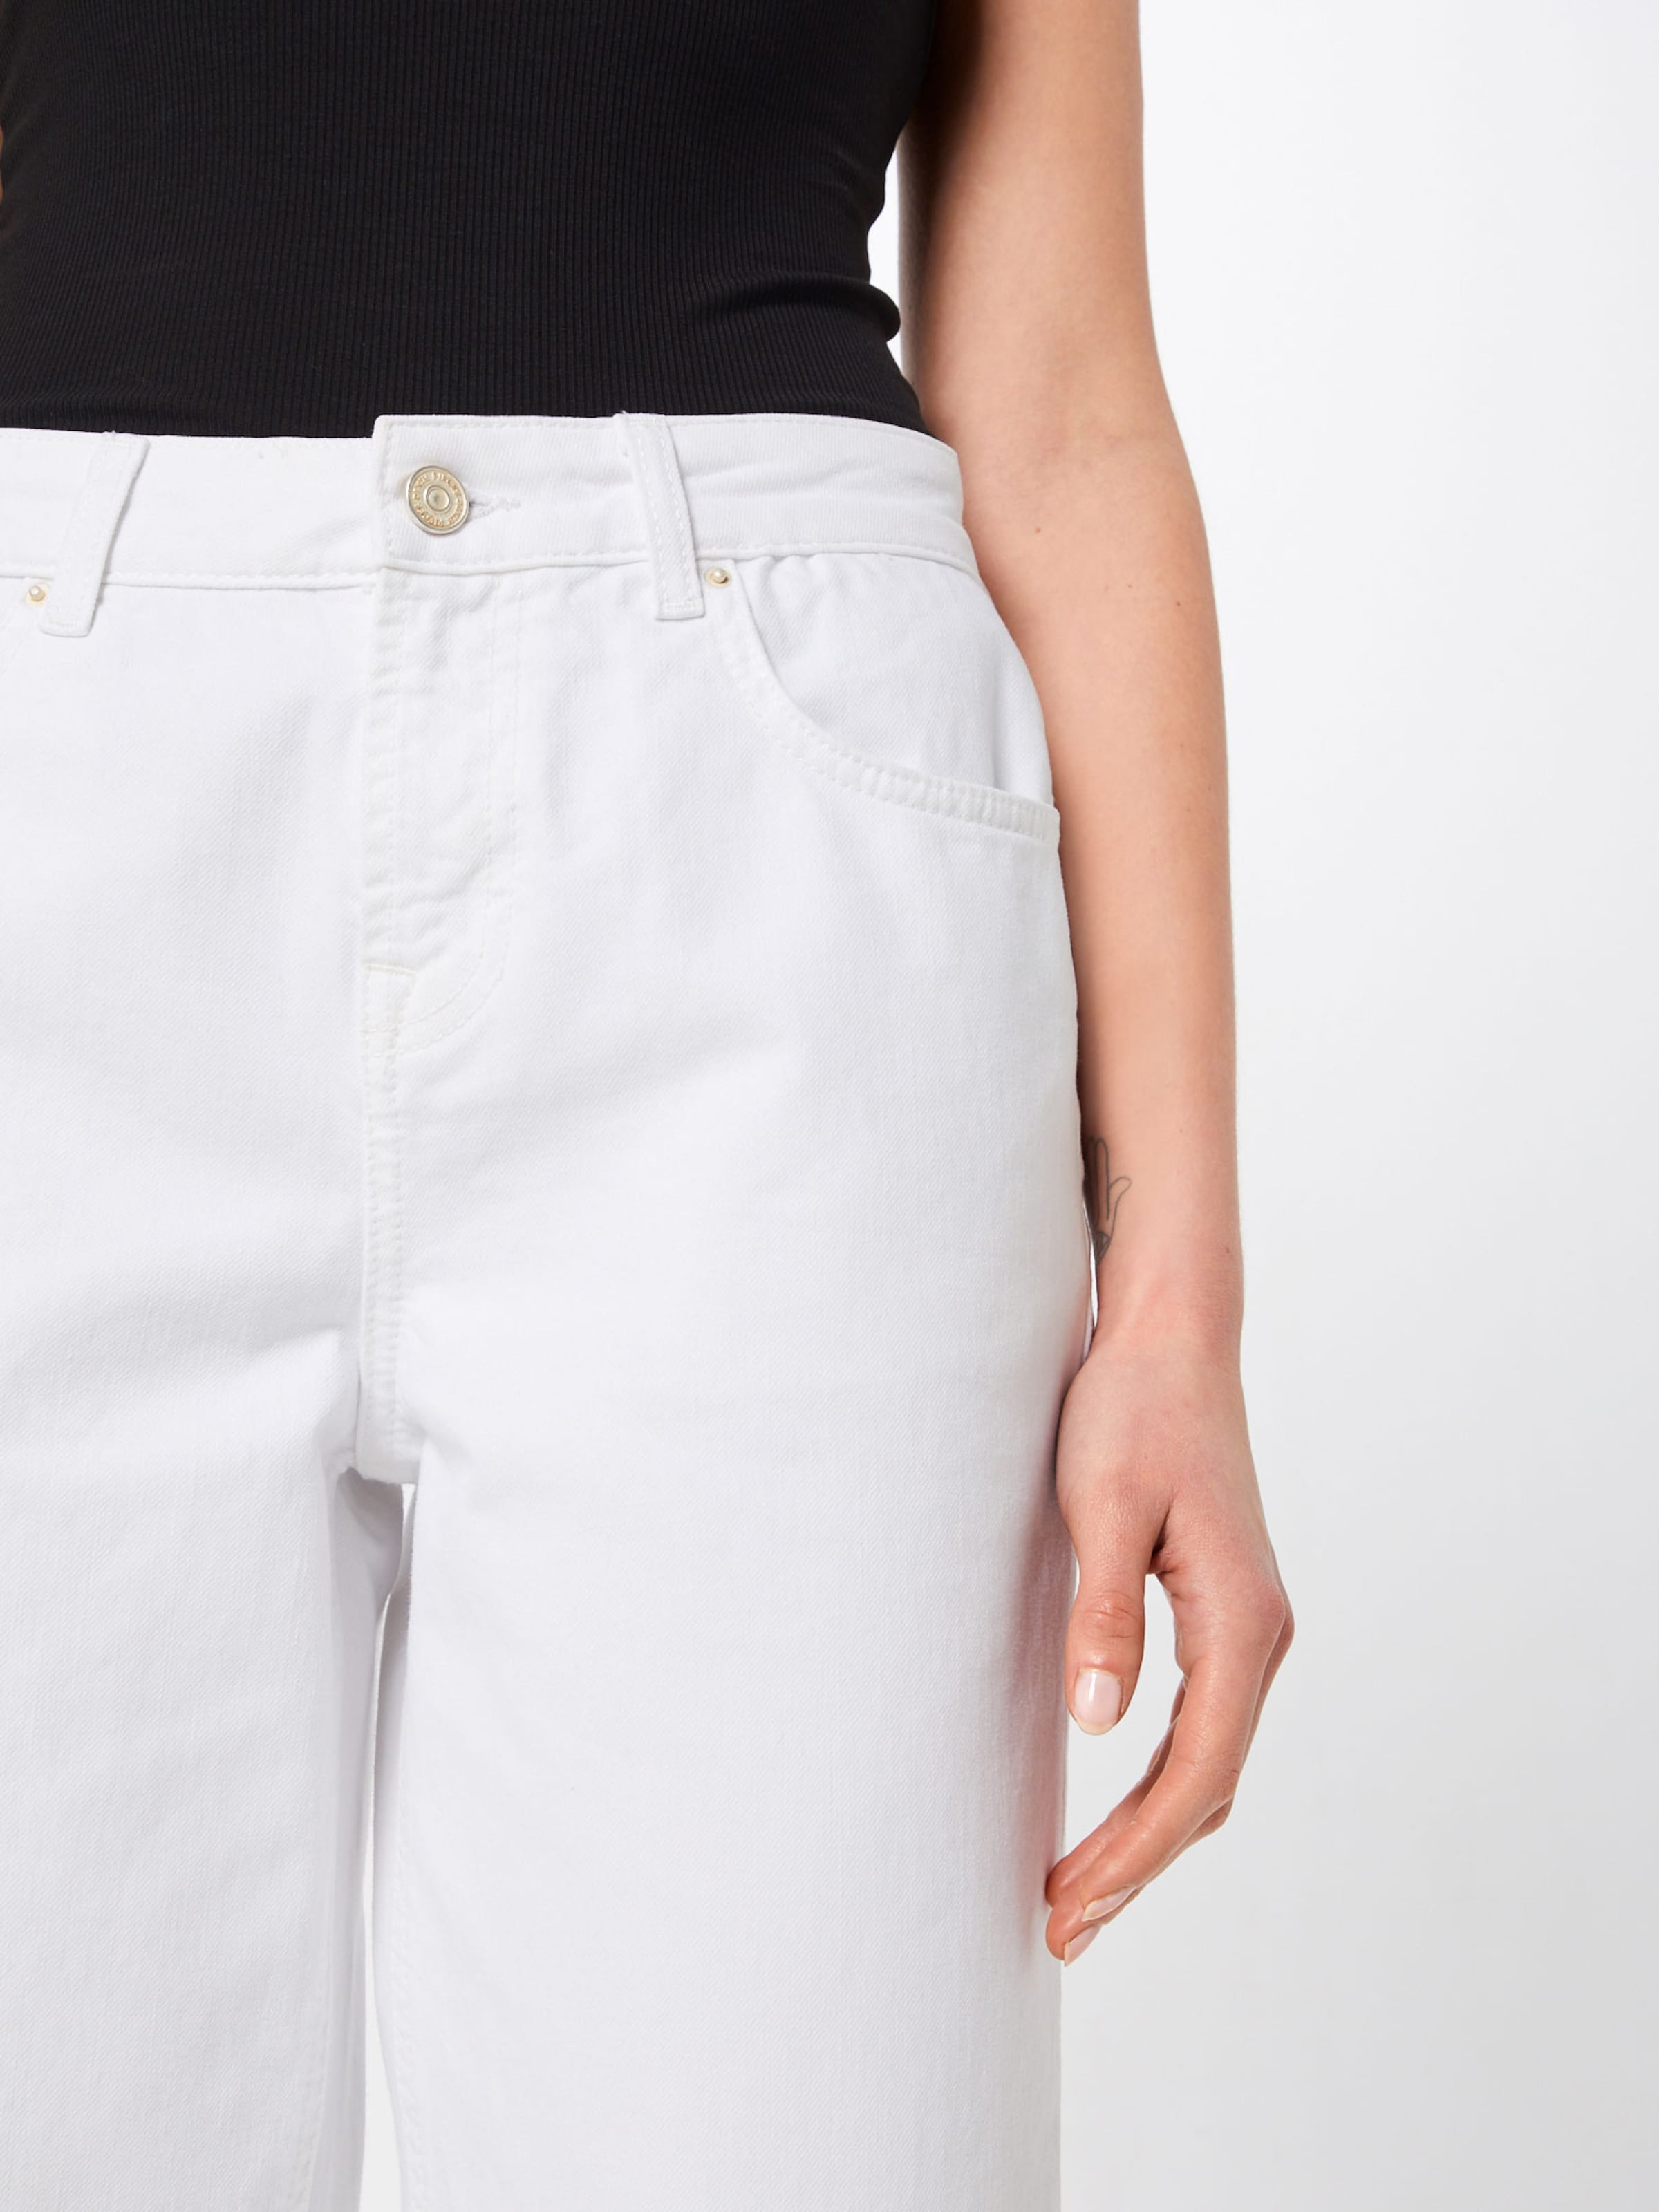 'bex' Pieces Pantalon En Blanc Pieces Pantalon 'bex' Nwmy8OPvn0